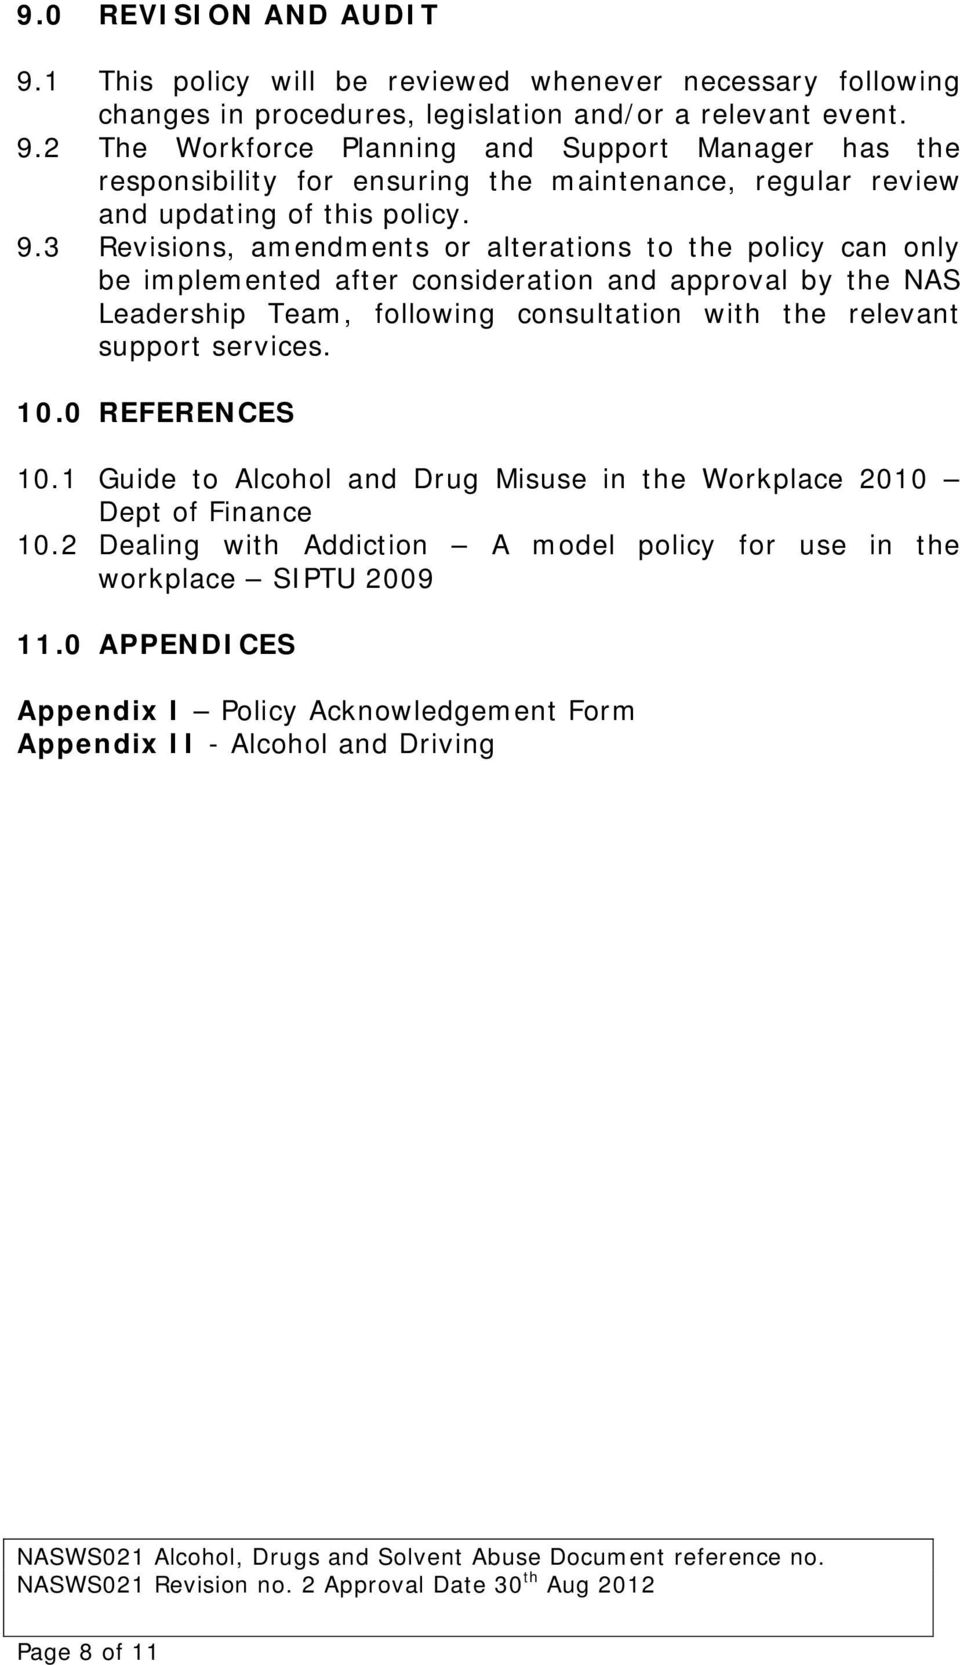 services. 10.0 REFERENCES 10.1 Guide to Alcohol and Drug Misuse in the Workplace 2010 Dept of Finance 10.2 Dealing with Addiction A model policy for use in the workplace SIPTU 2009 11.